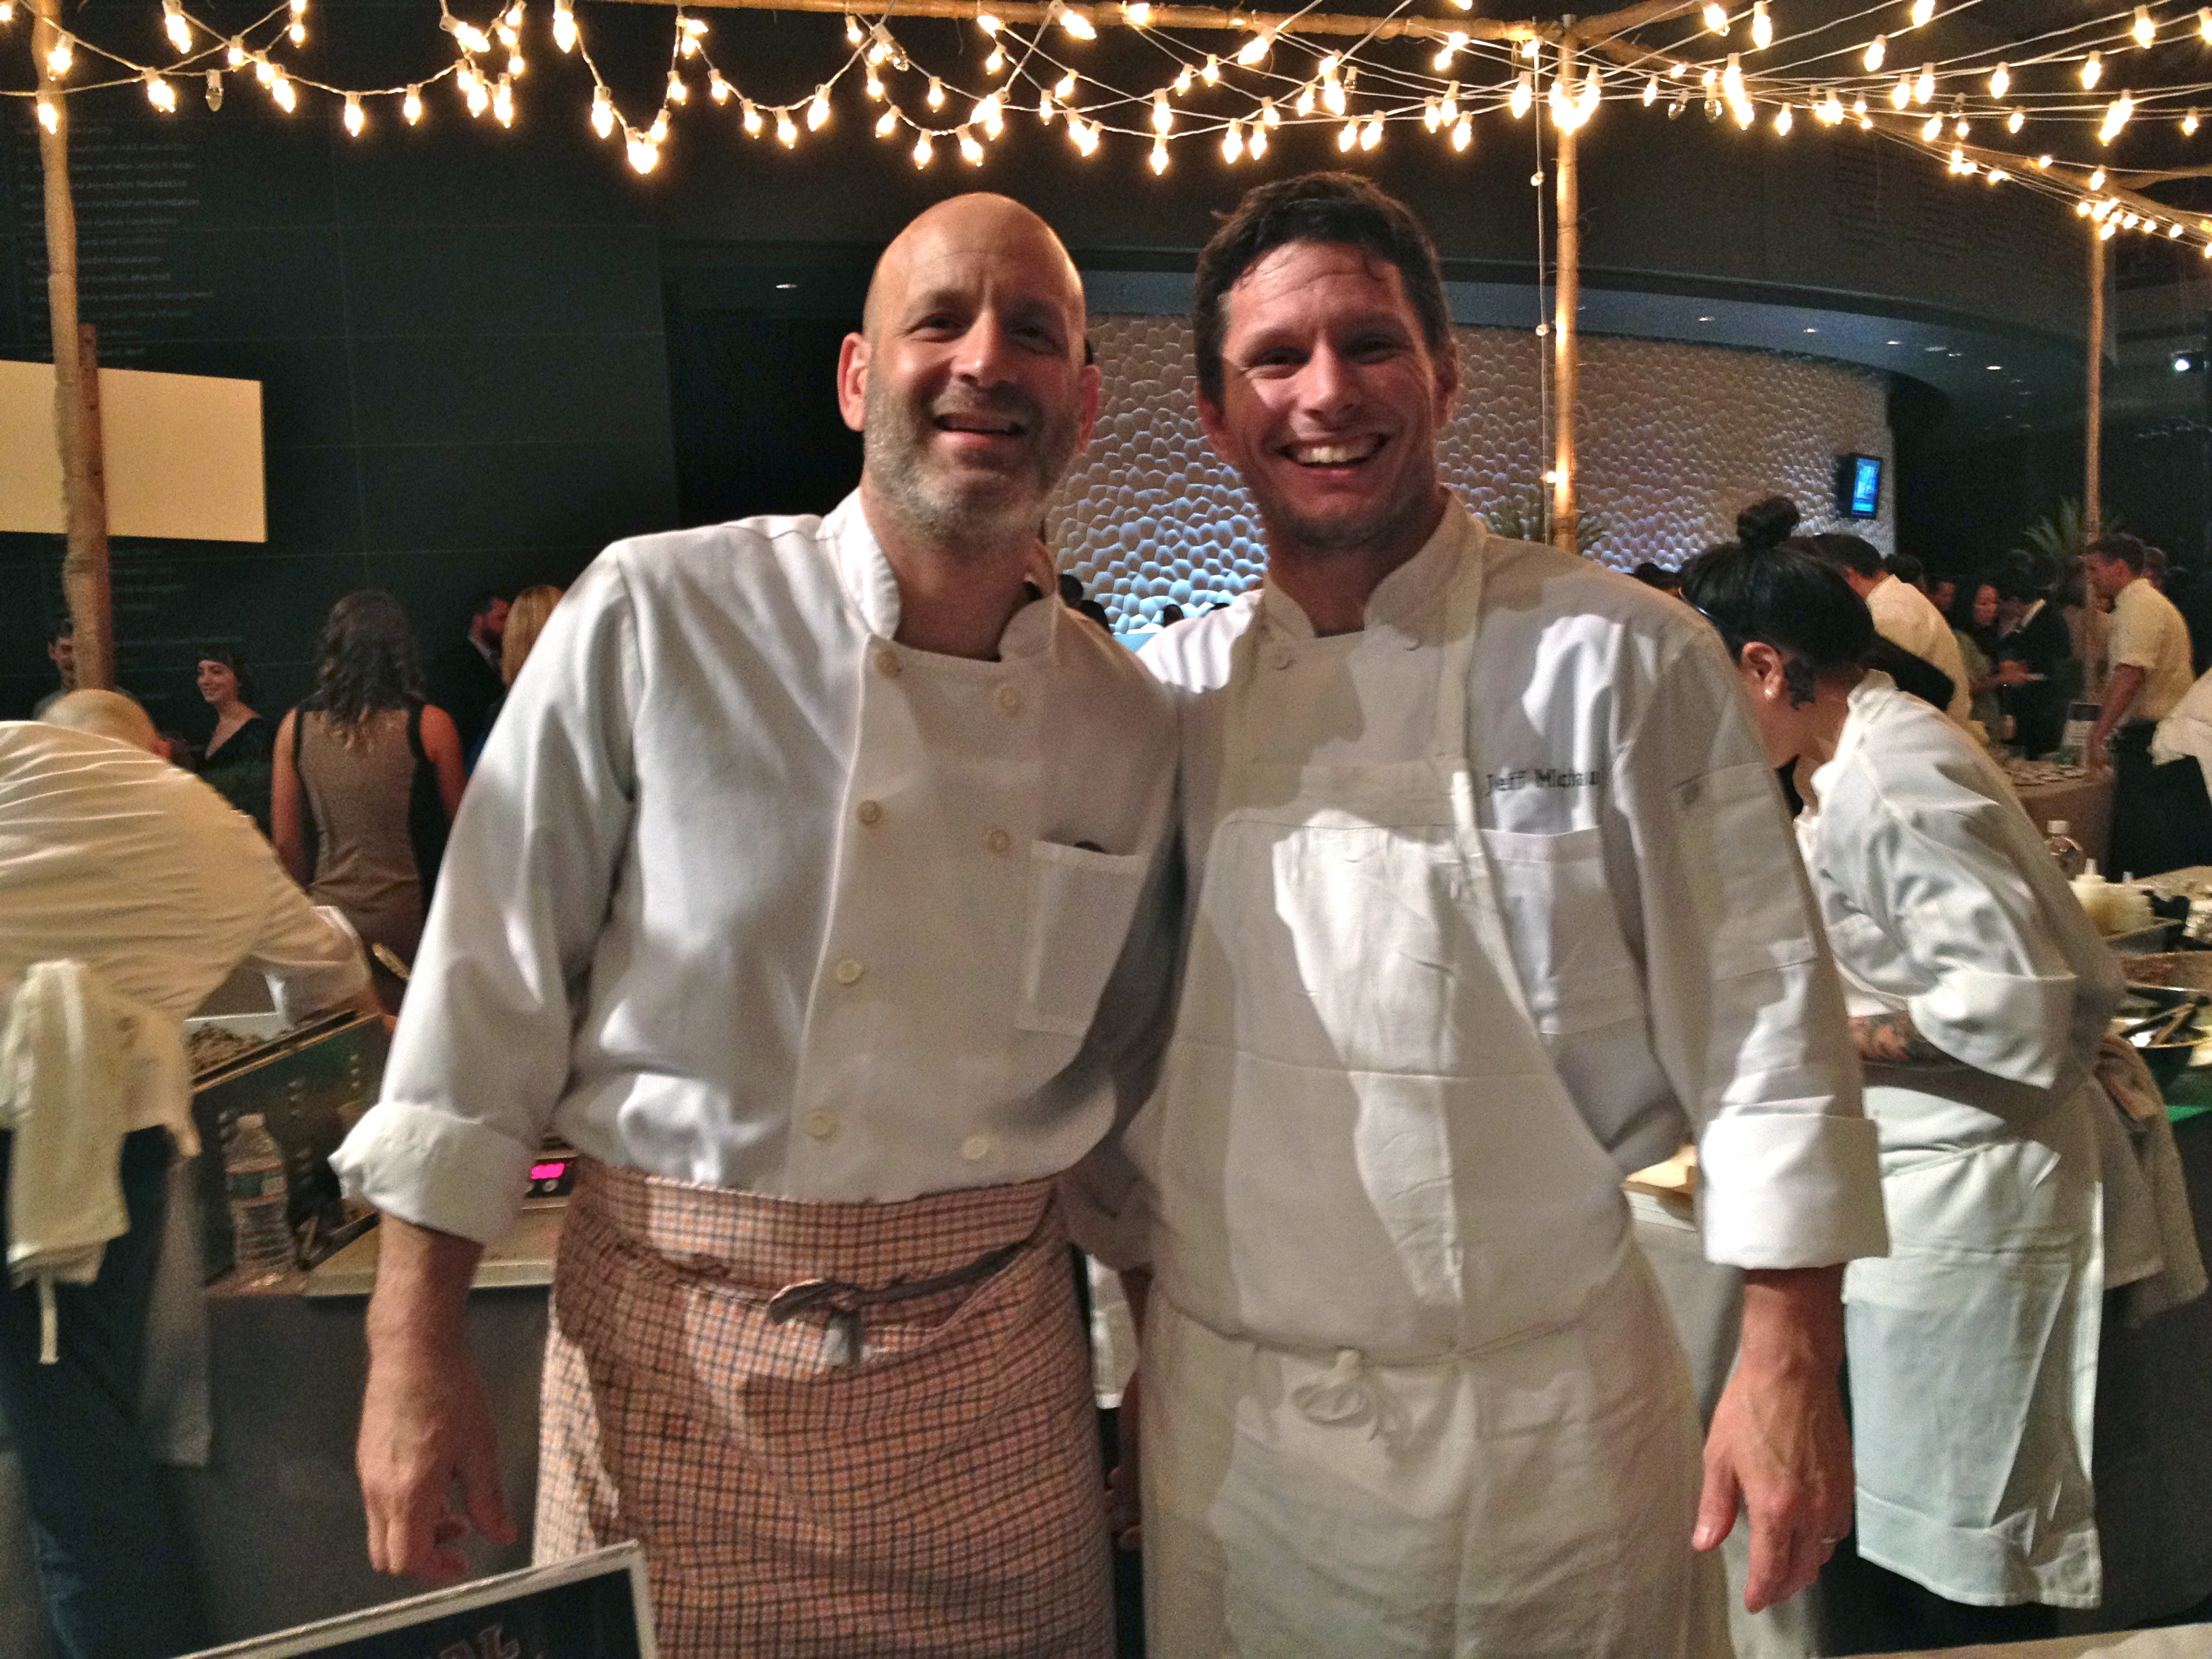 Vetri Family: head chef/owner Marc Vetri & executive chef/partner Jeff Michaud